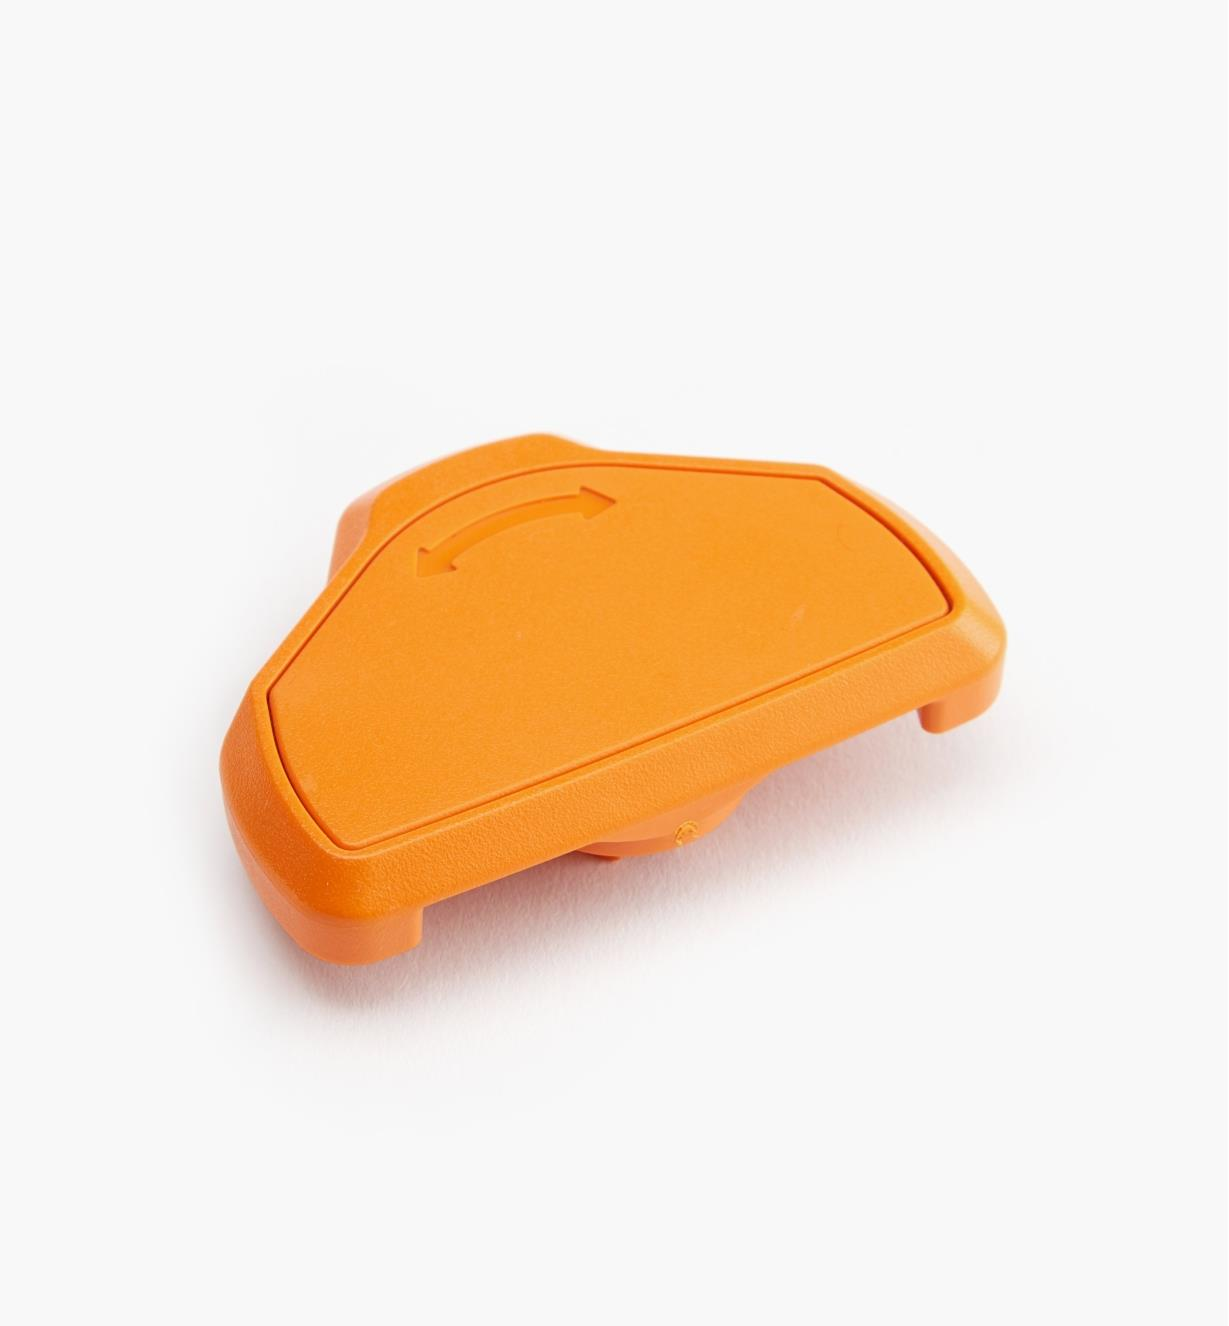 68K4632 - Orange Mini Latch, each